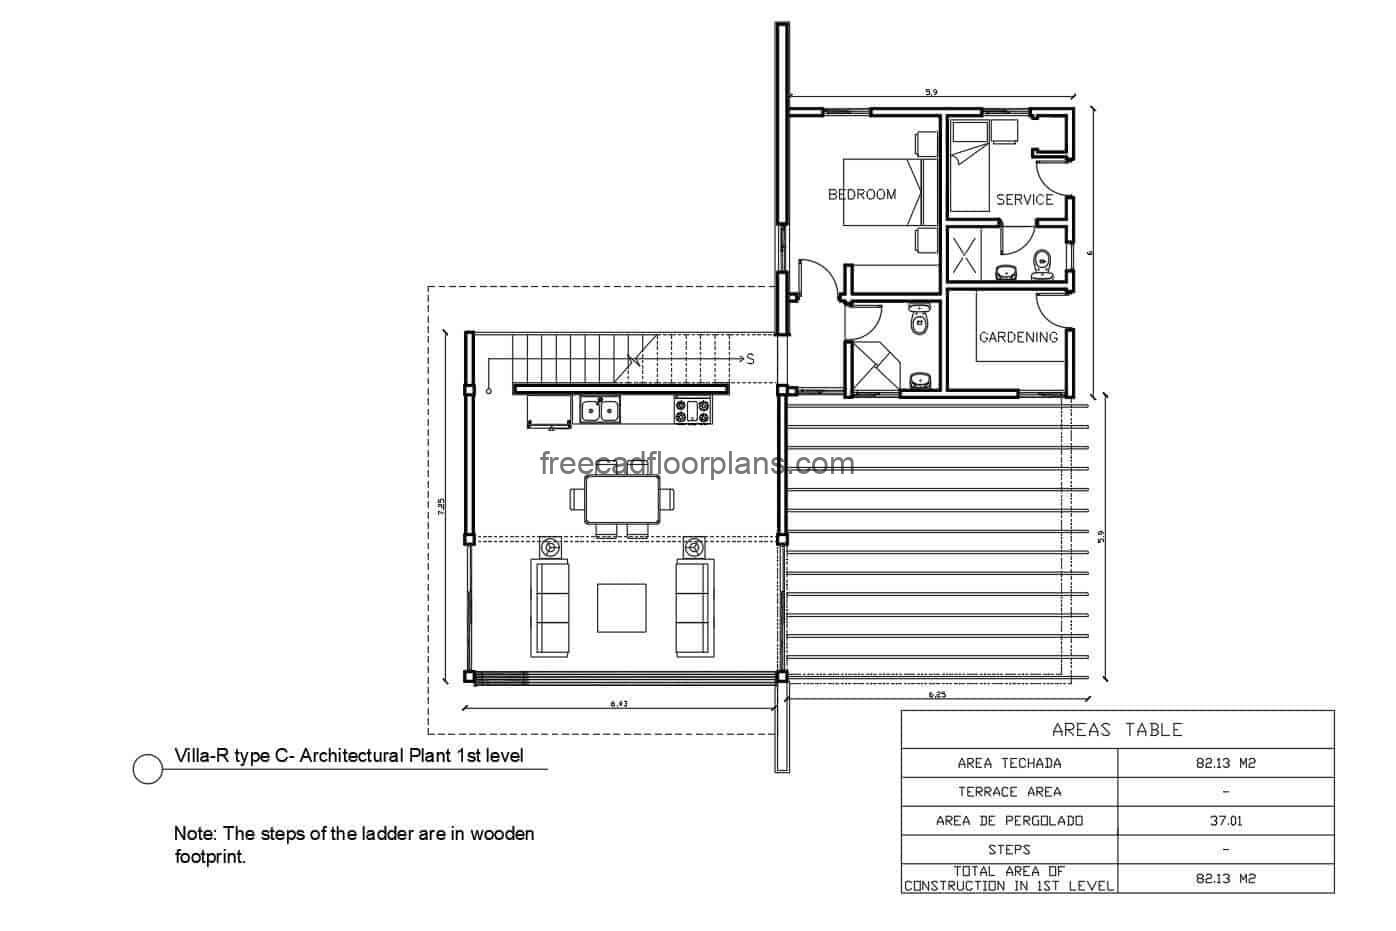 Complete project of autocad plans of a two level country house with three rooms and loft, structural details, technical sanitary, electrical and structural plans.